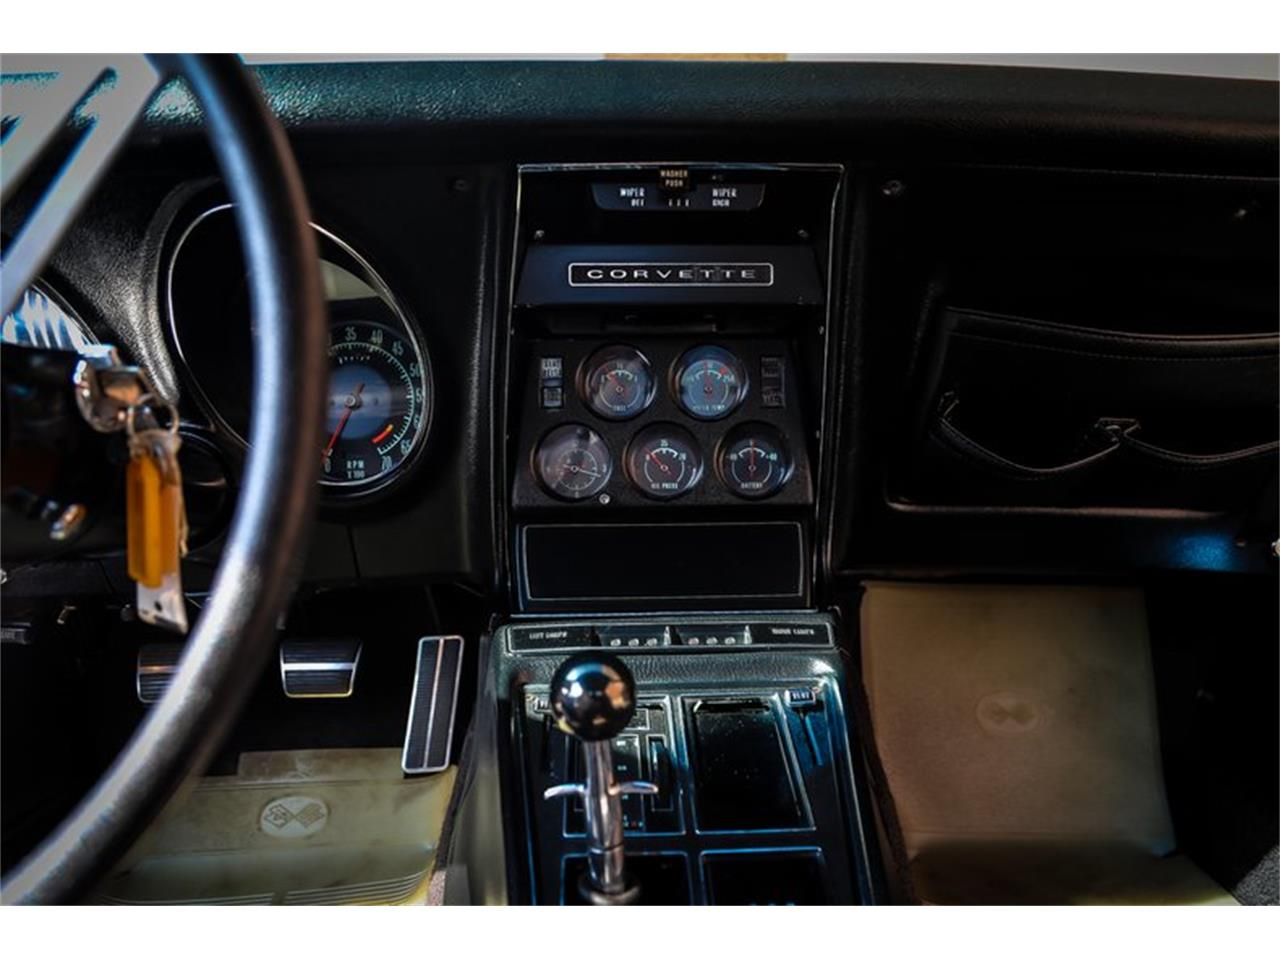 1969 Chevrolet Corvette for sale in Wallingford, CT – photo 56